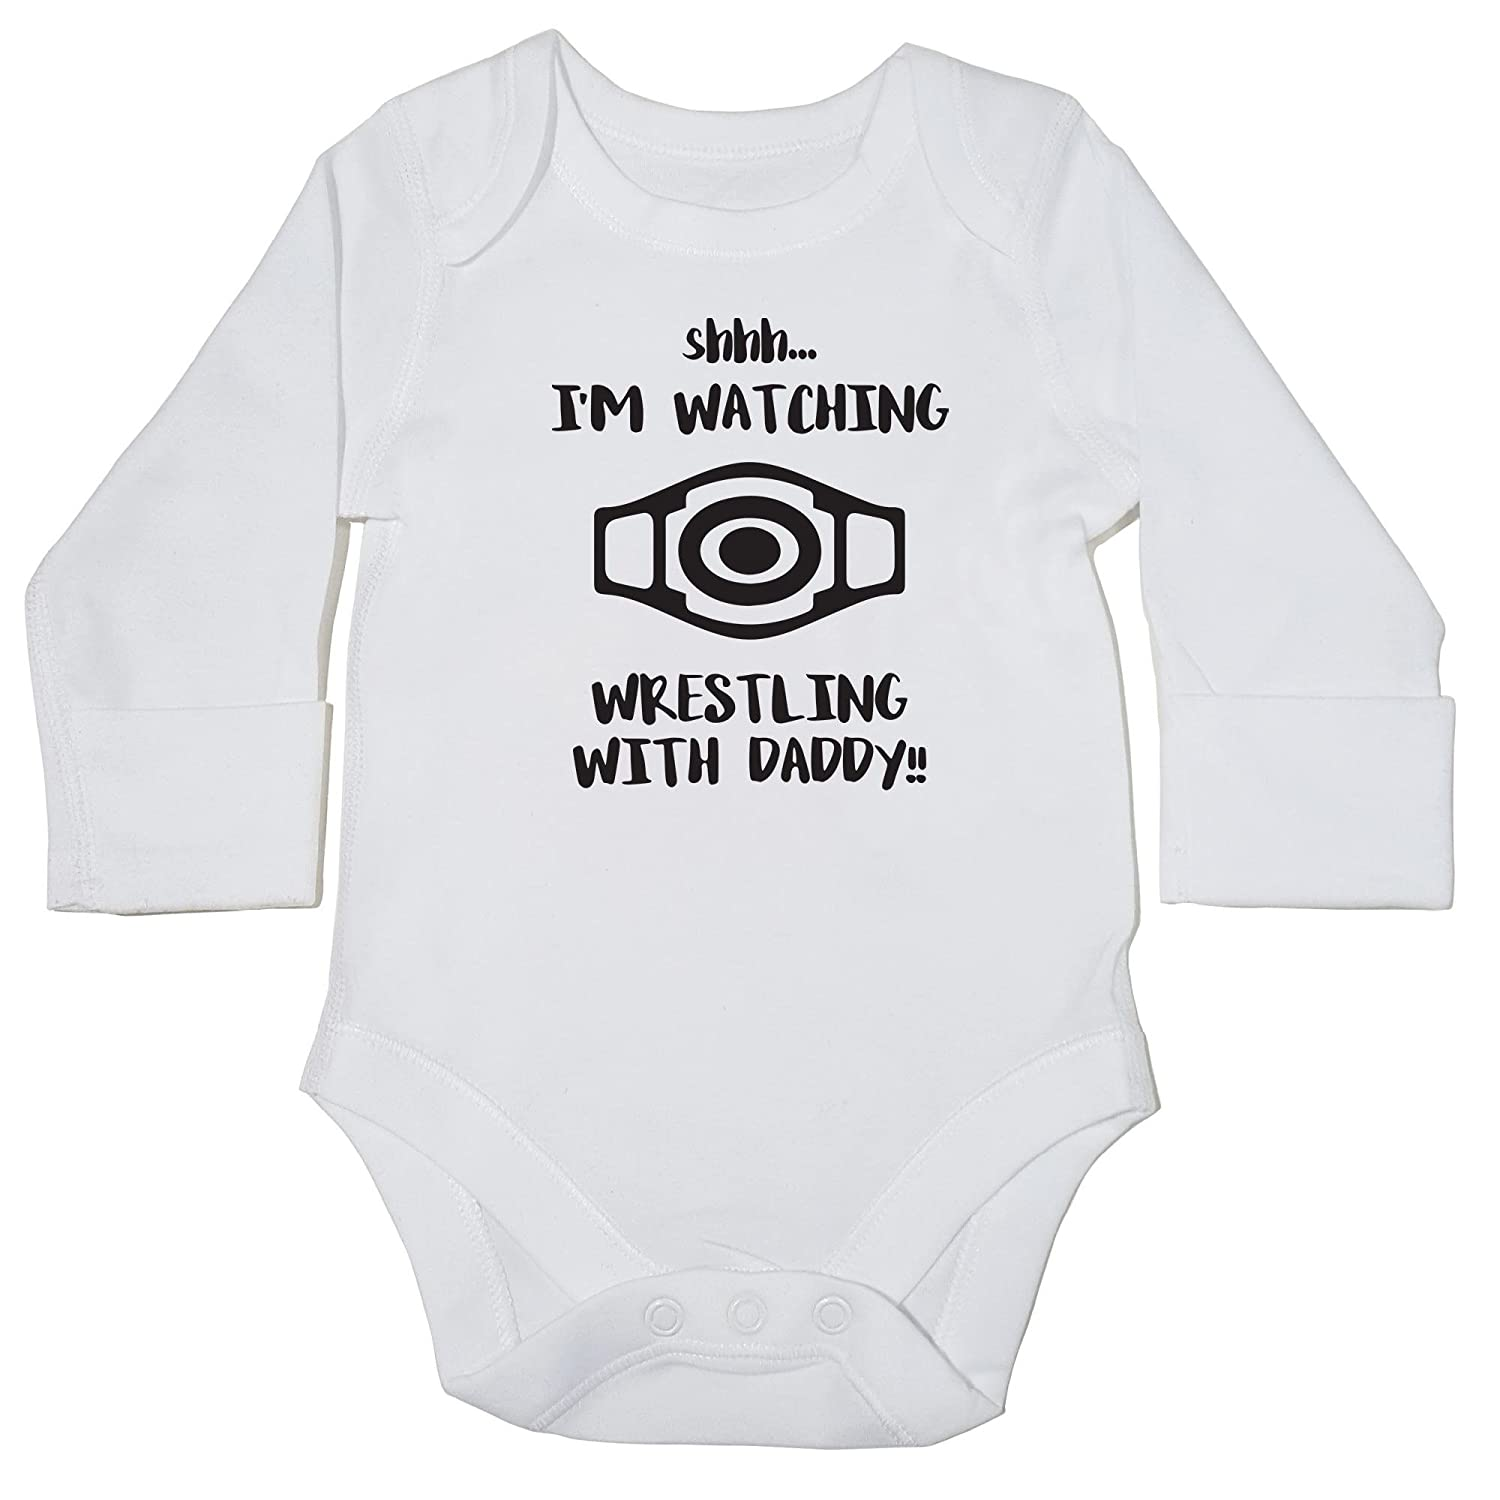 923521b92 Hippowarehouse Shhh. I'm Watching Wrestling with Daddy!! Baby Vest Bodysuit  (Long Sleeve) Boys Girls: Amazon.co.uk: Clothing